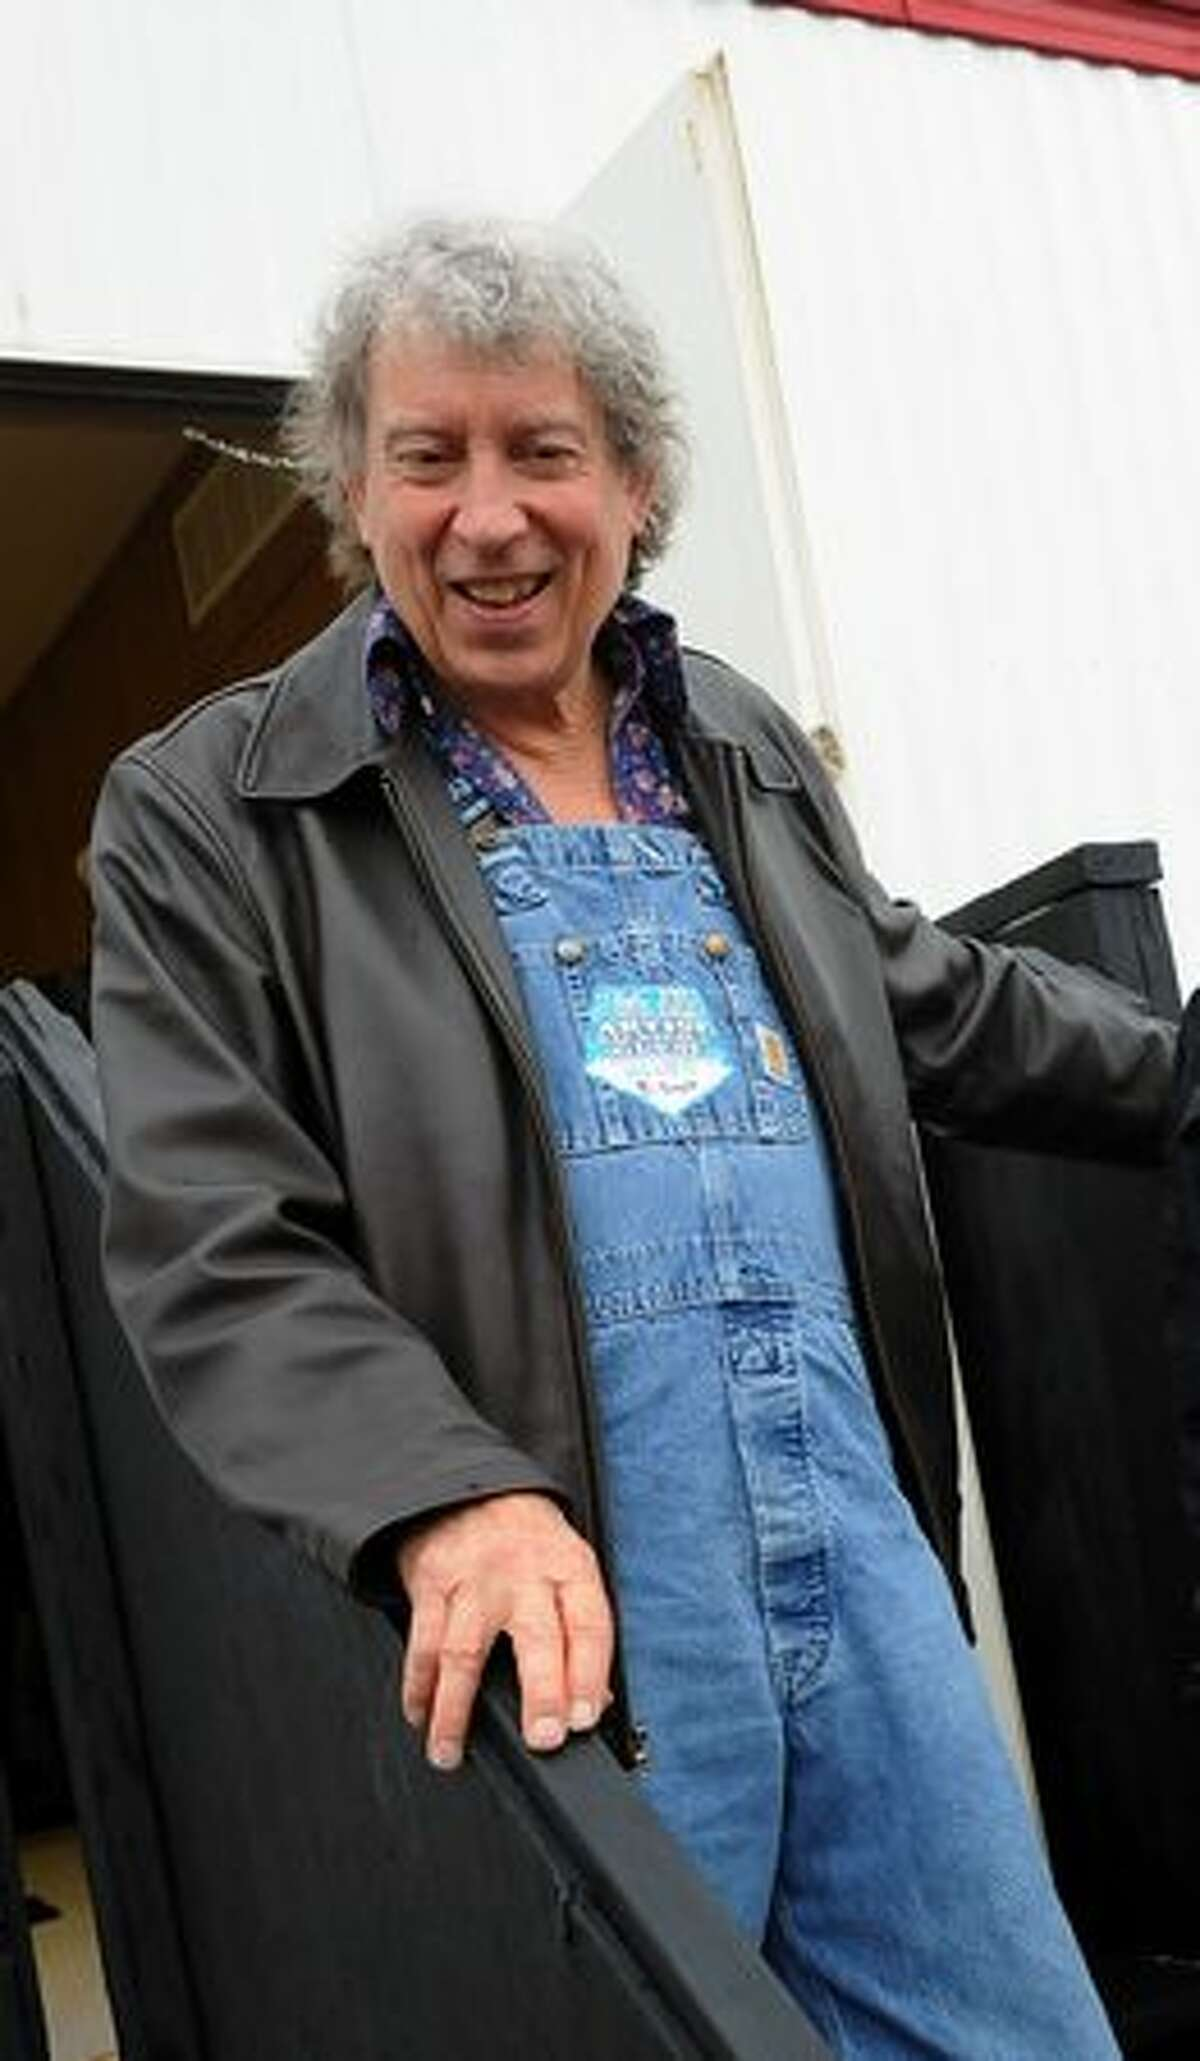 Recording Artist Elvin Bishop backstage at the 2010 New Orleans Jazz & Heritage Festival held at the Fair Grounds Race Course on April 23, 2010 in New Orleans.